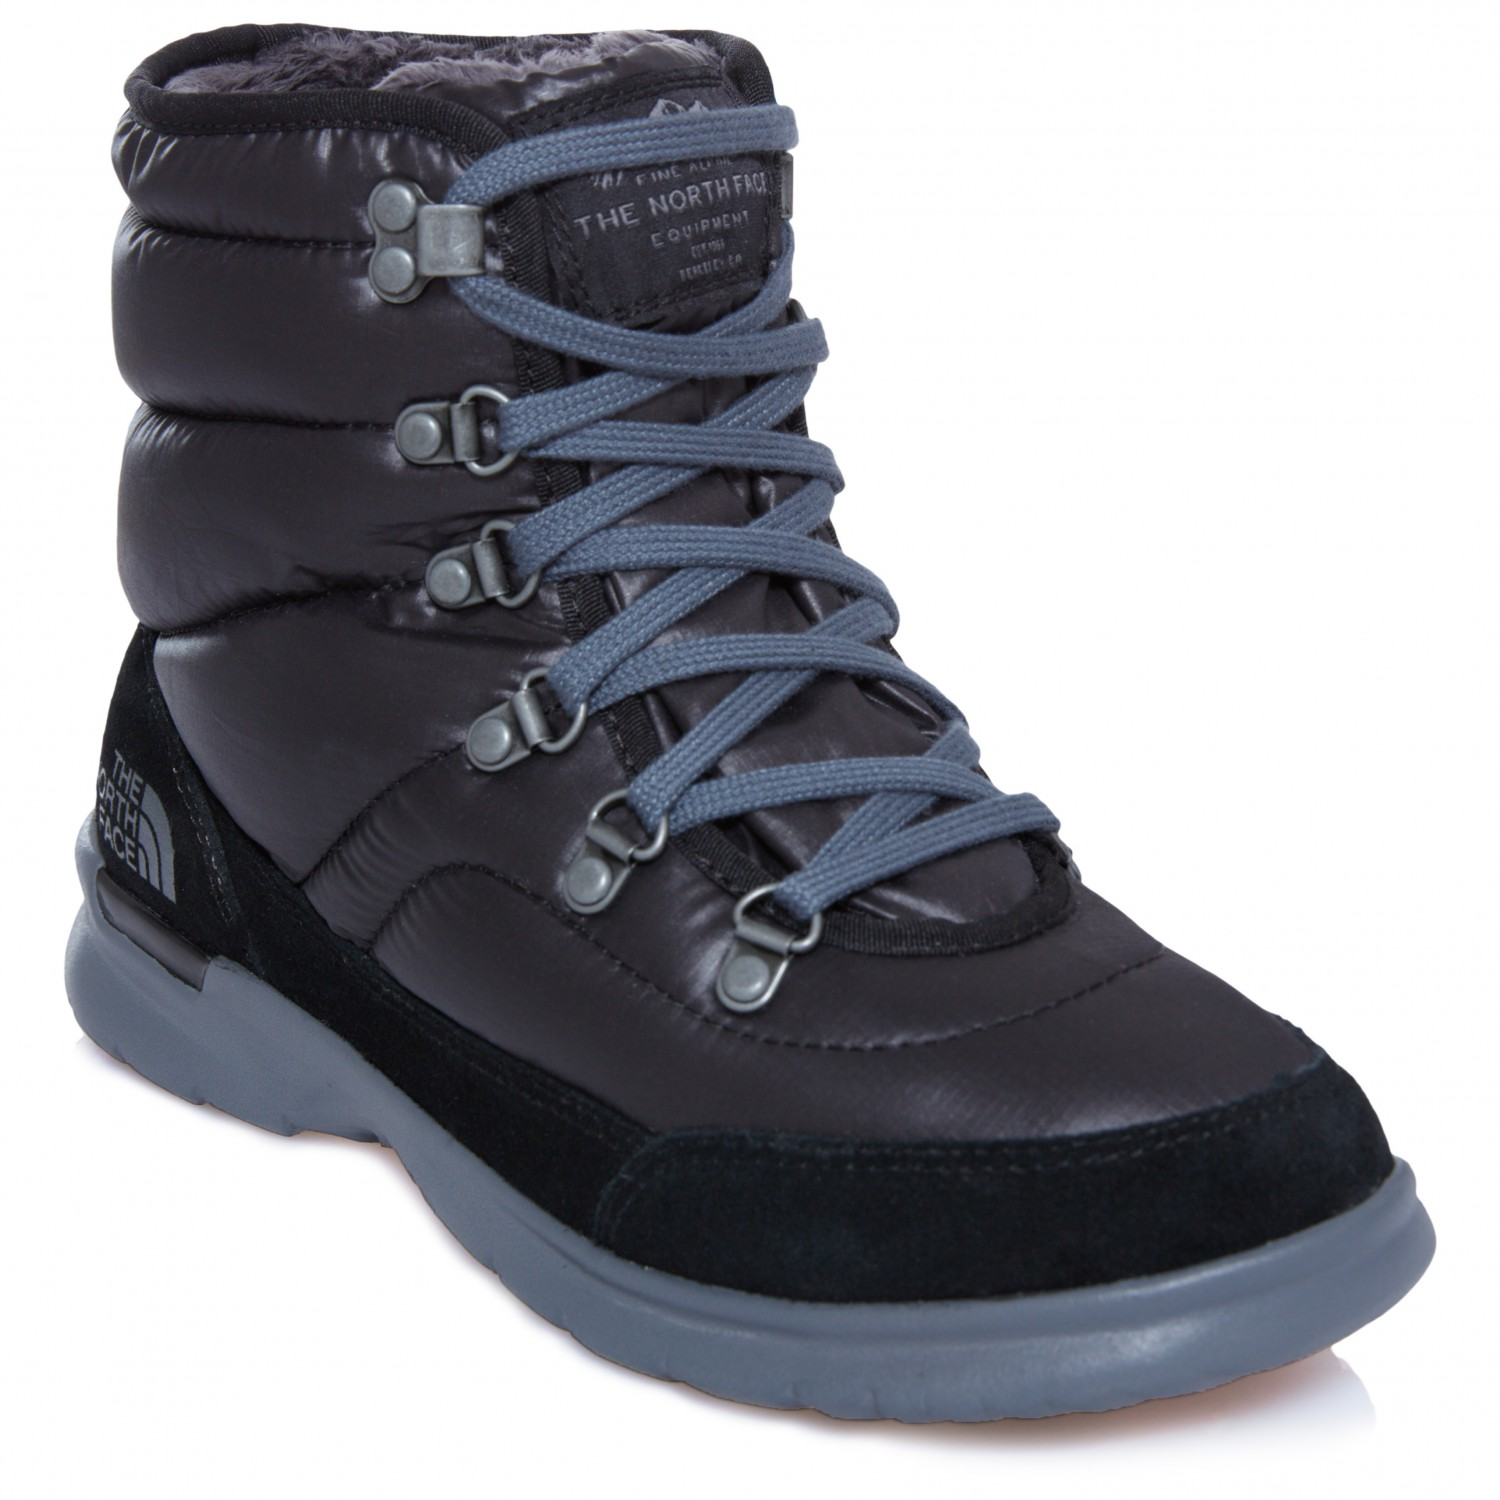 e2c3af9ad The North Face - Women's Thermoball Lace II - Winter boots - Burnished  Houndstooth Print / Blue Haze | 11 (US)